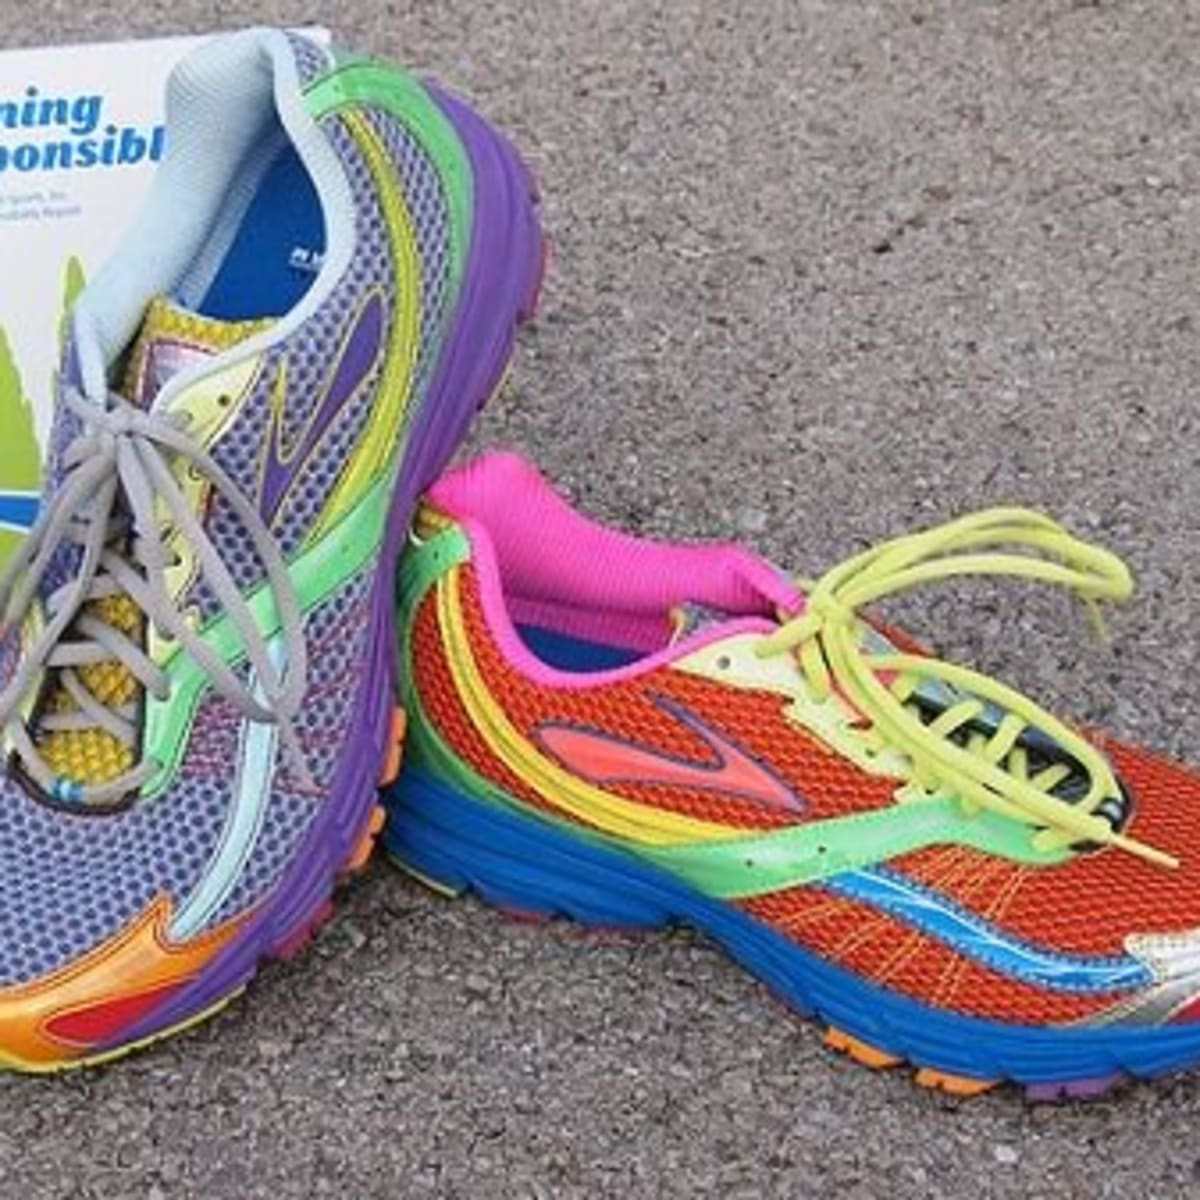 Eco-Friendly Running Shoes and Clothes